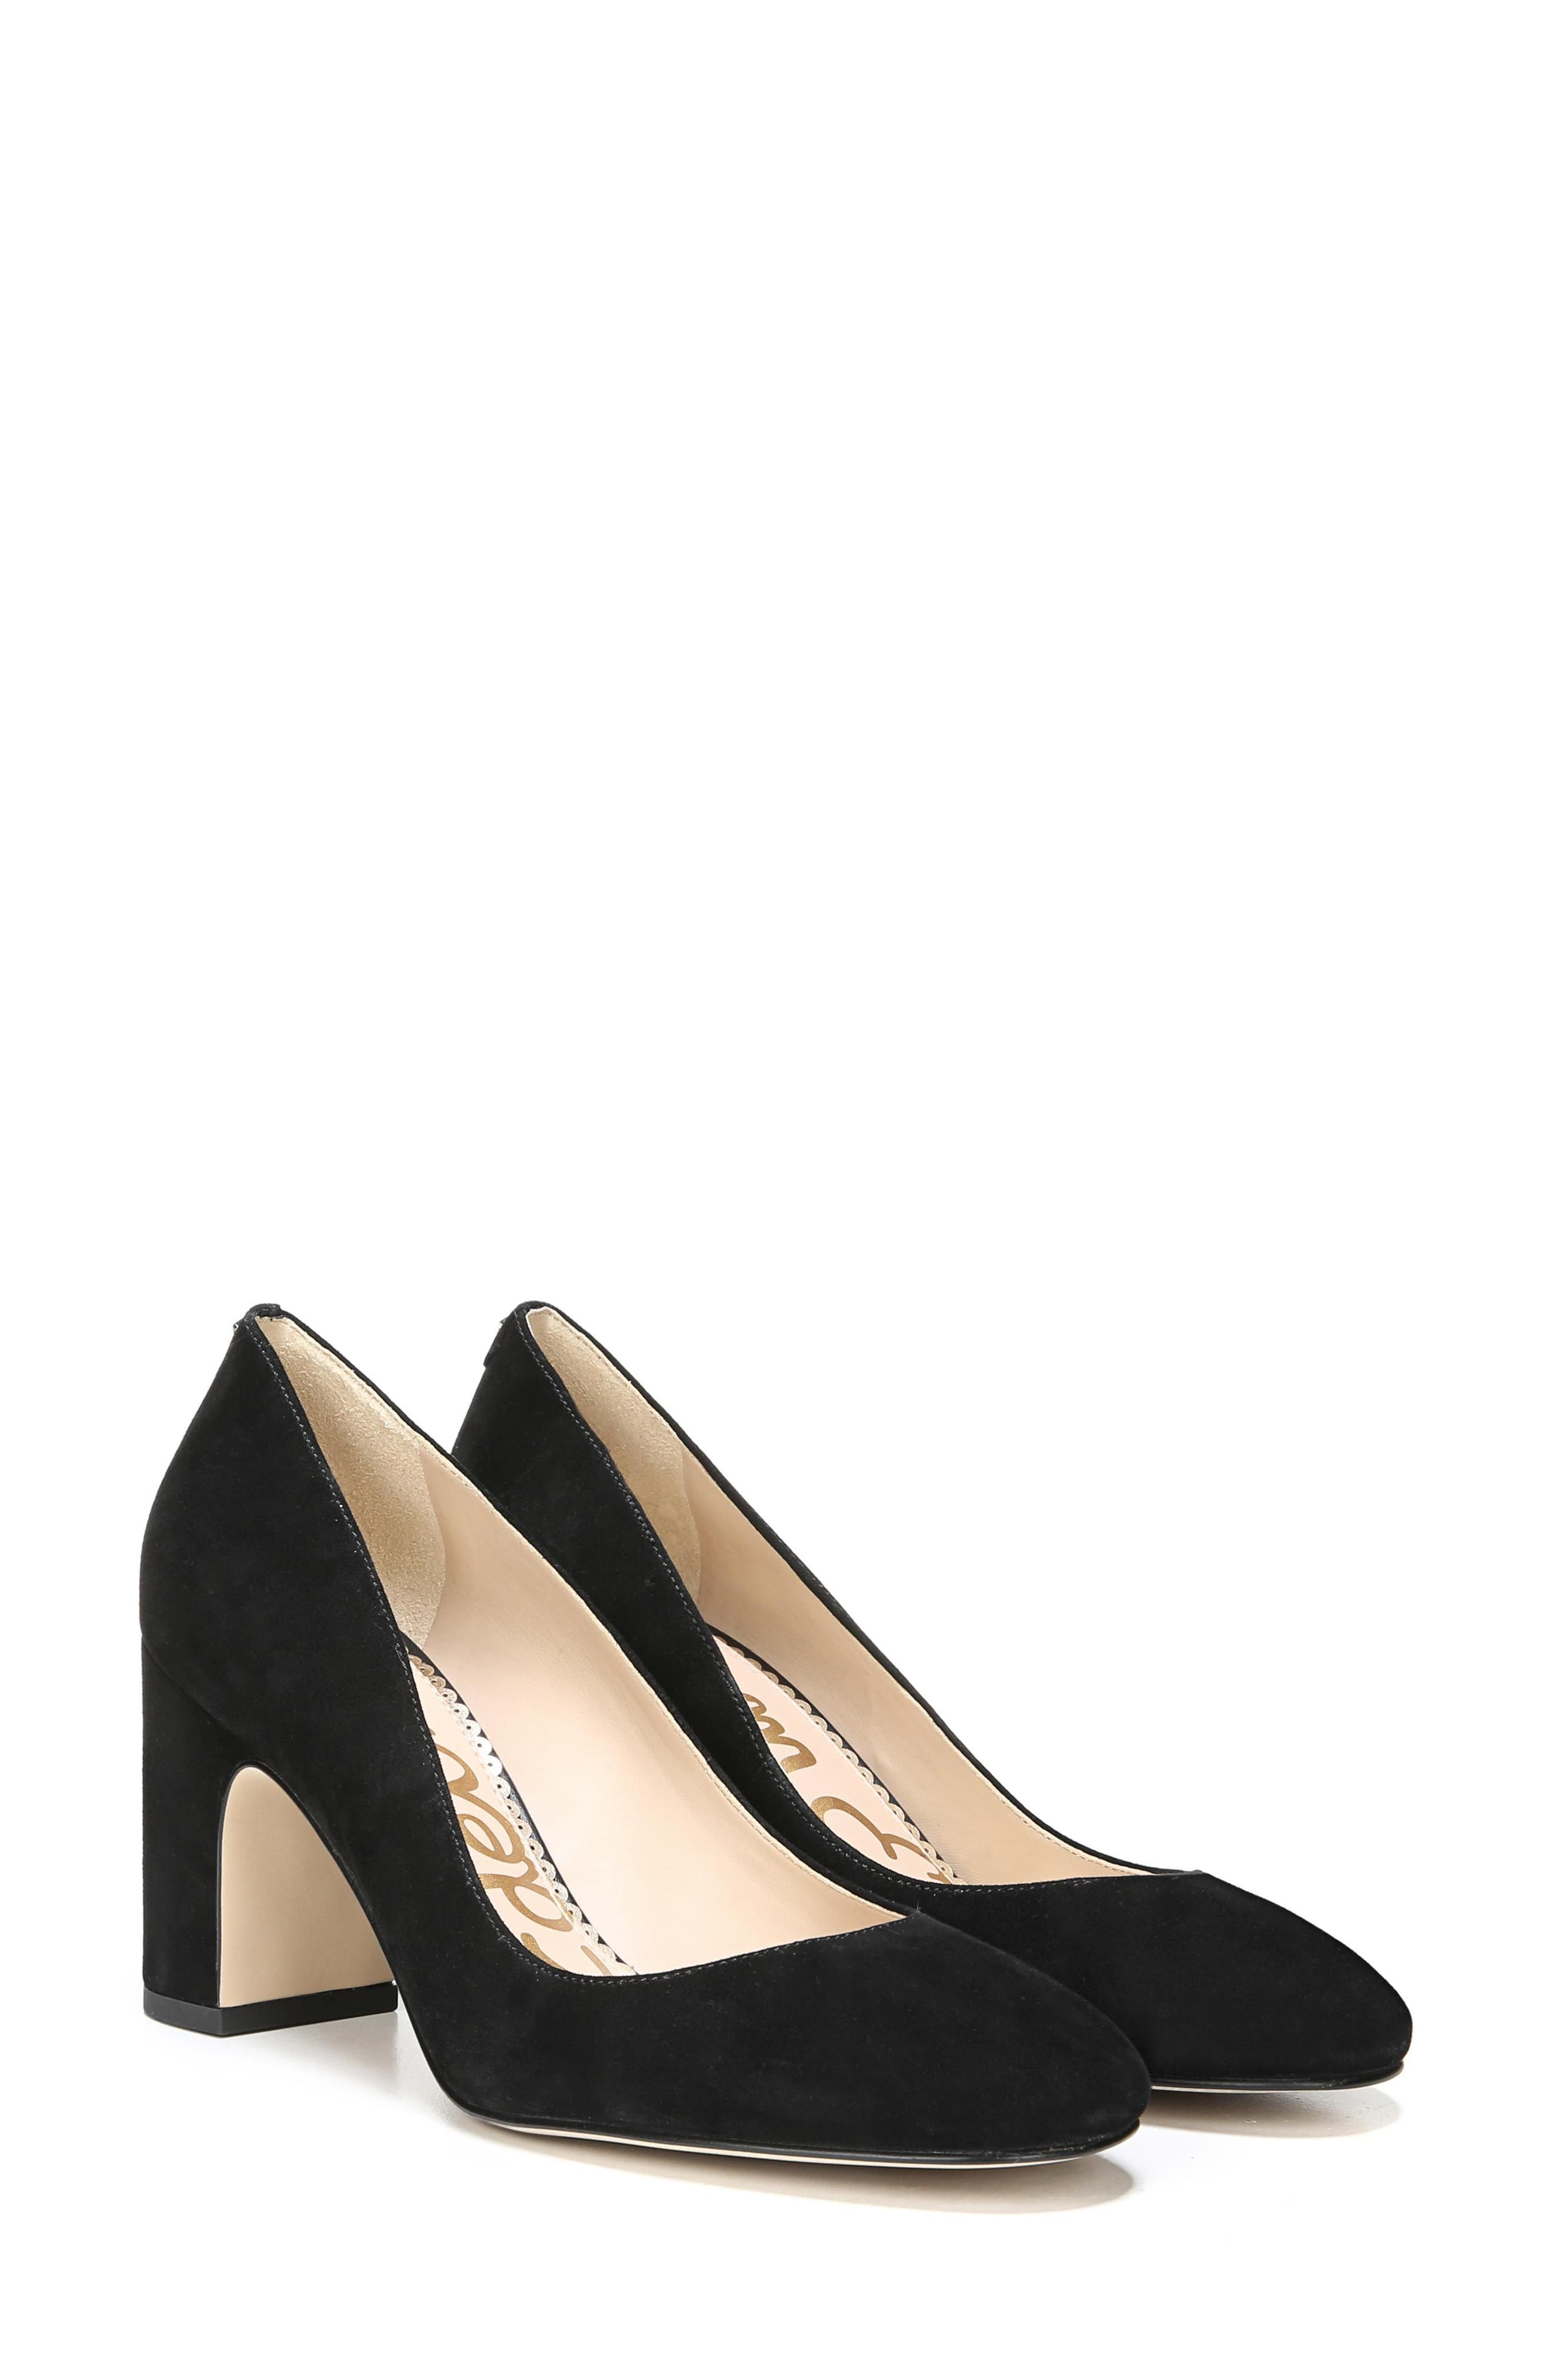 Junie Genuine Calf Hair Pump,                             Alternate thumbnail 8, color,                             001